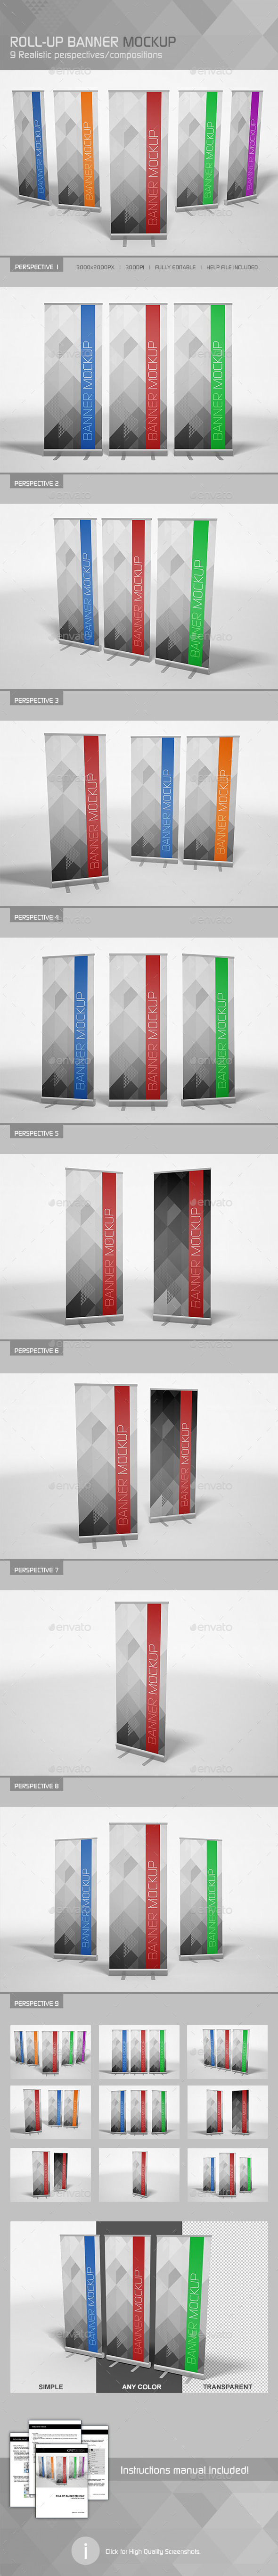 Realistic Roll-up Banner Mockup - Signage Print